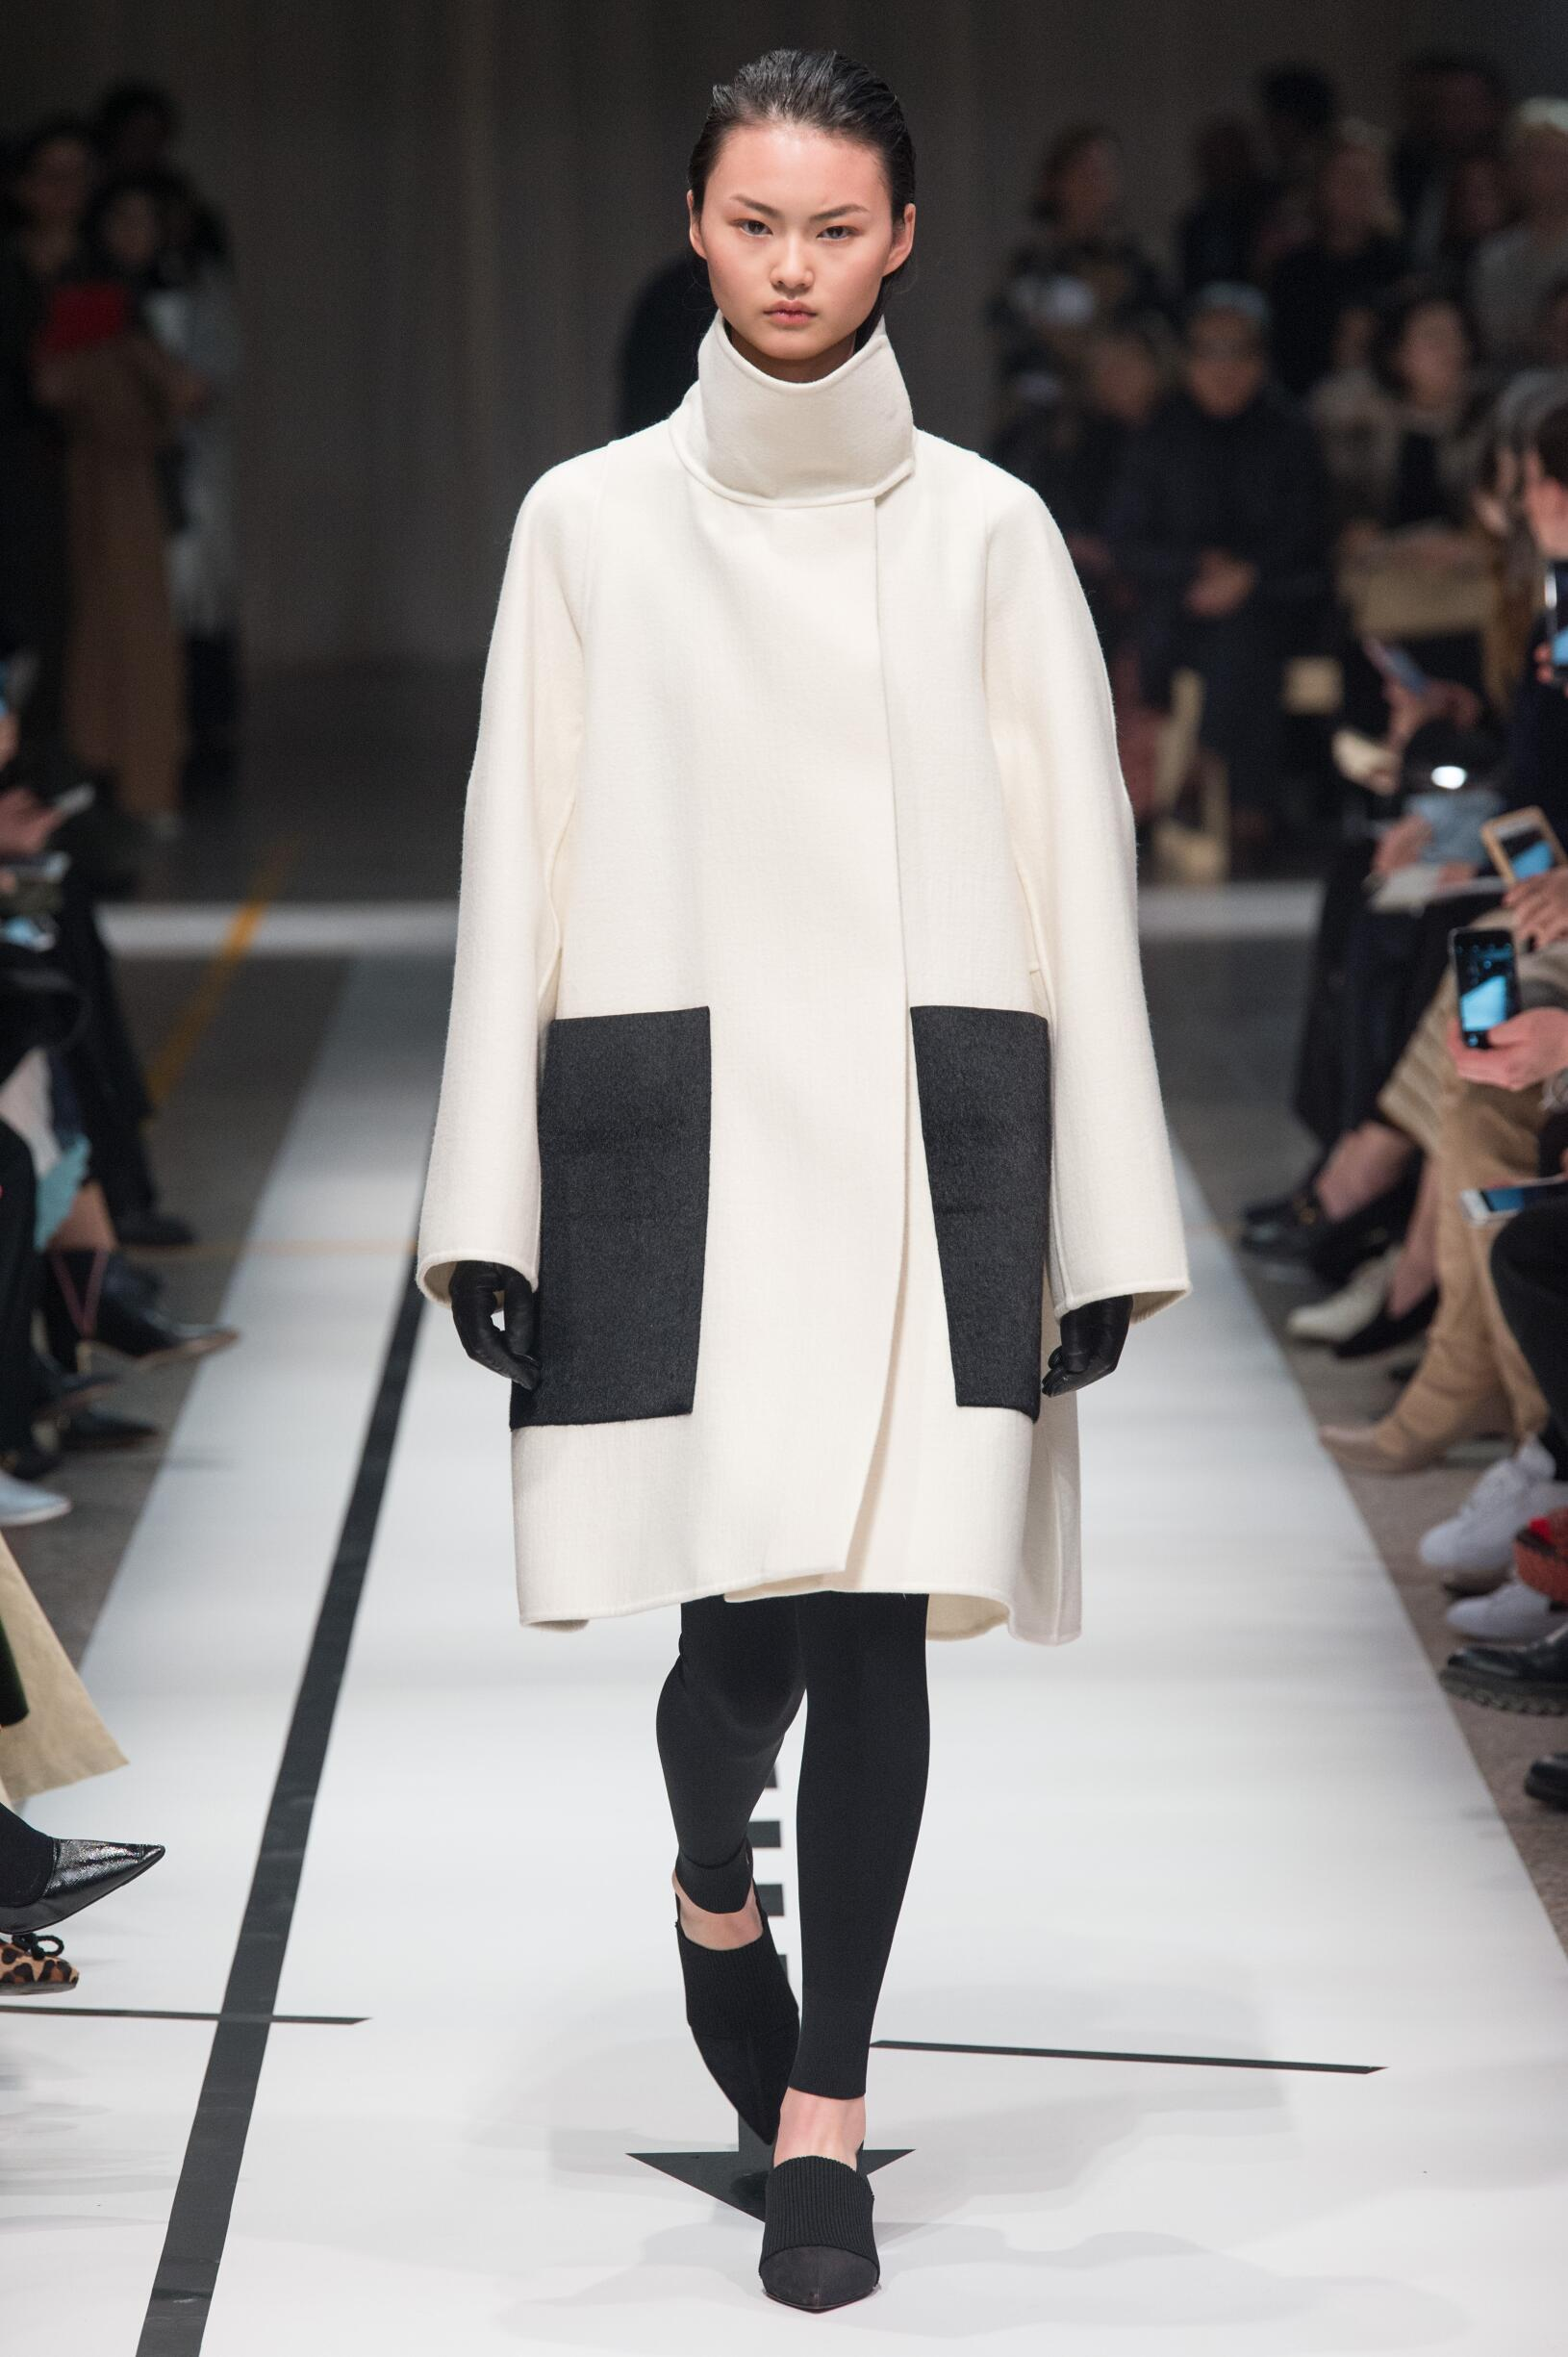 Fall Fashion 2017-18 Sportmax